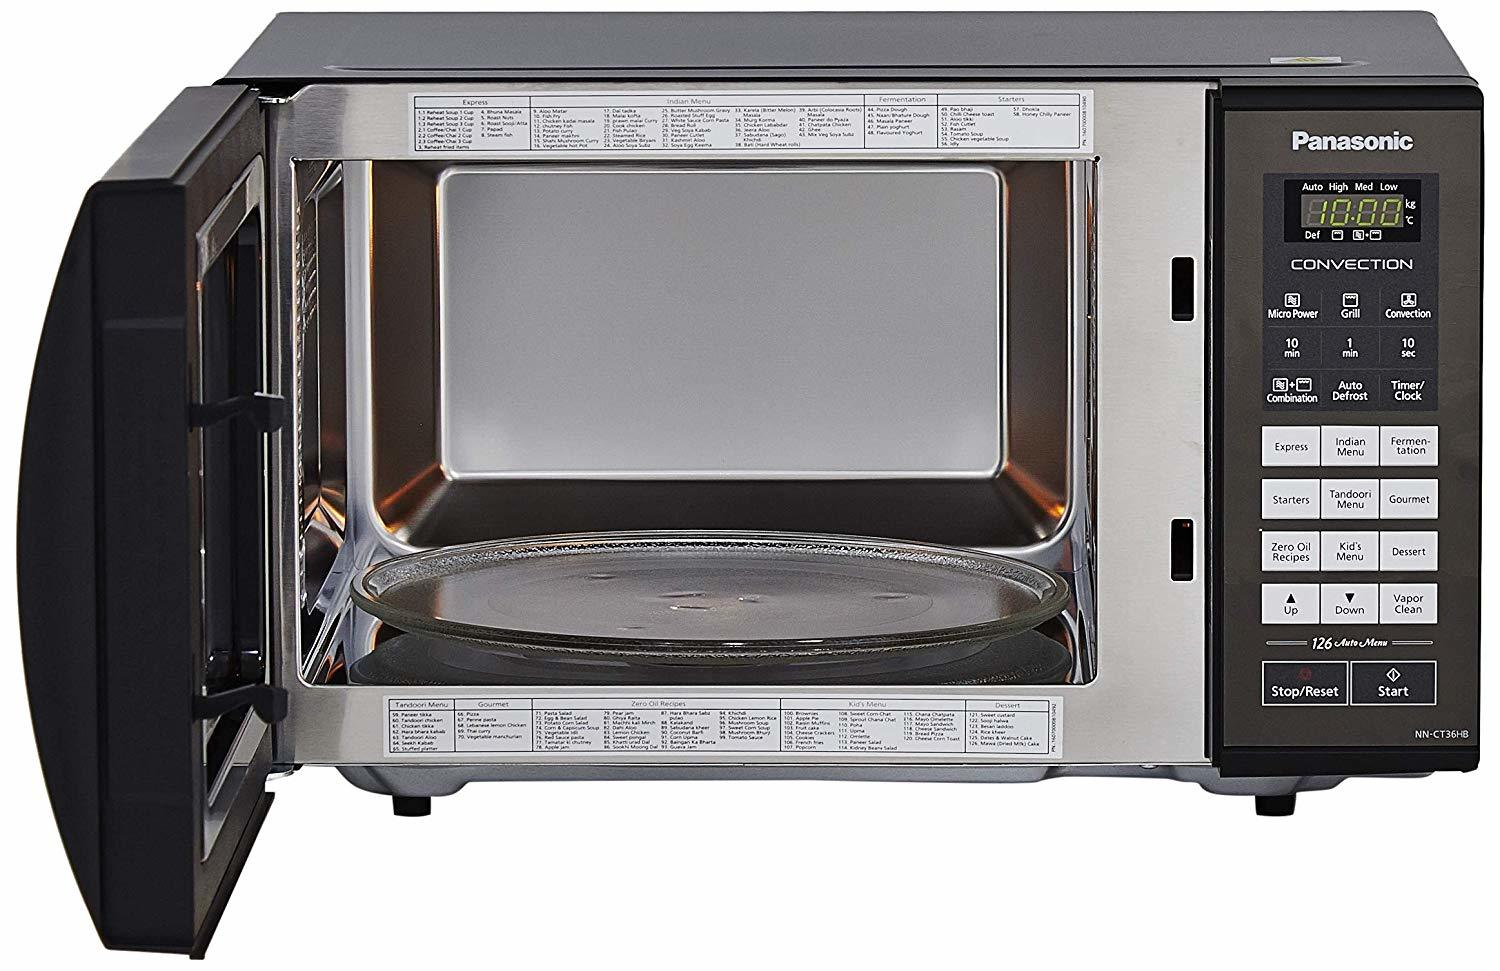 Panasonic 23 L Convection Microwave Oven (NN-CT36HBFDG, Black)